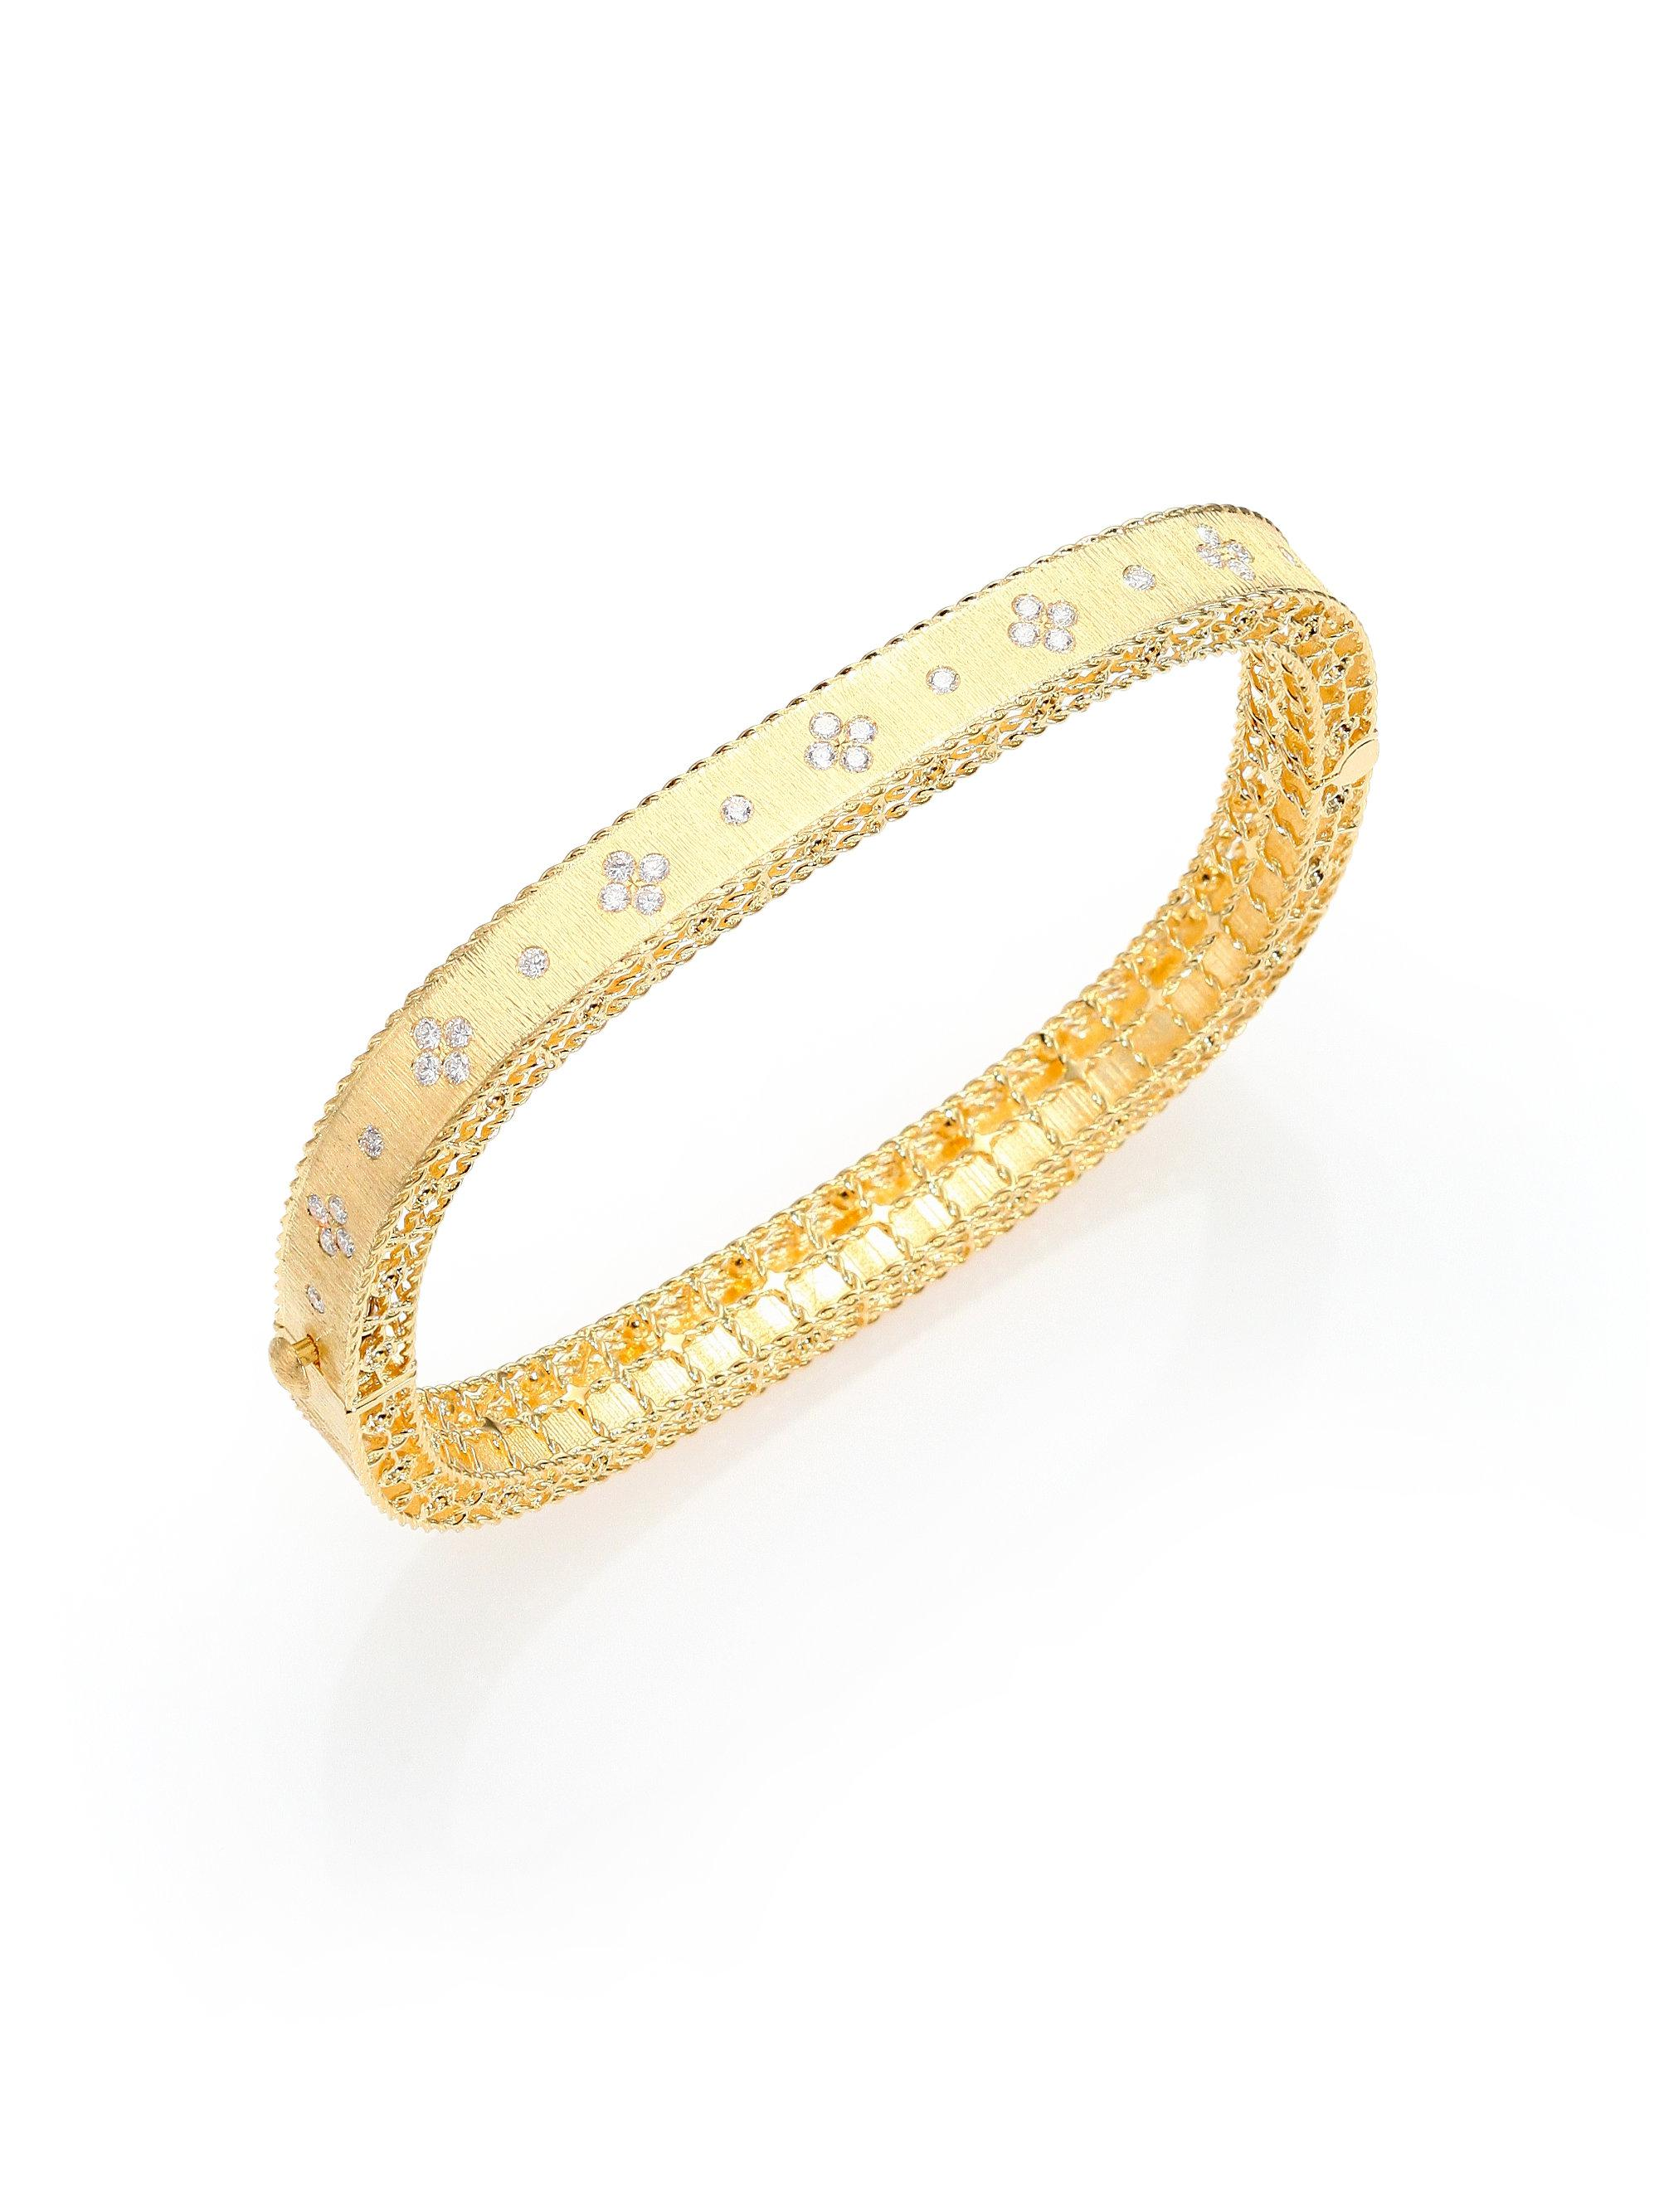 bracelet bracelets women s for bangles womens watches shipping free antique jewelry product diamond bangle rose overstock today gold yellow cut silver